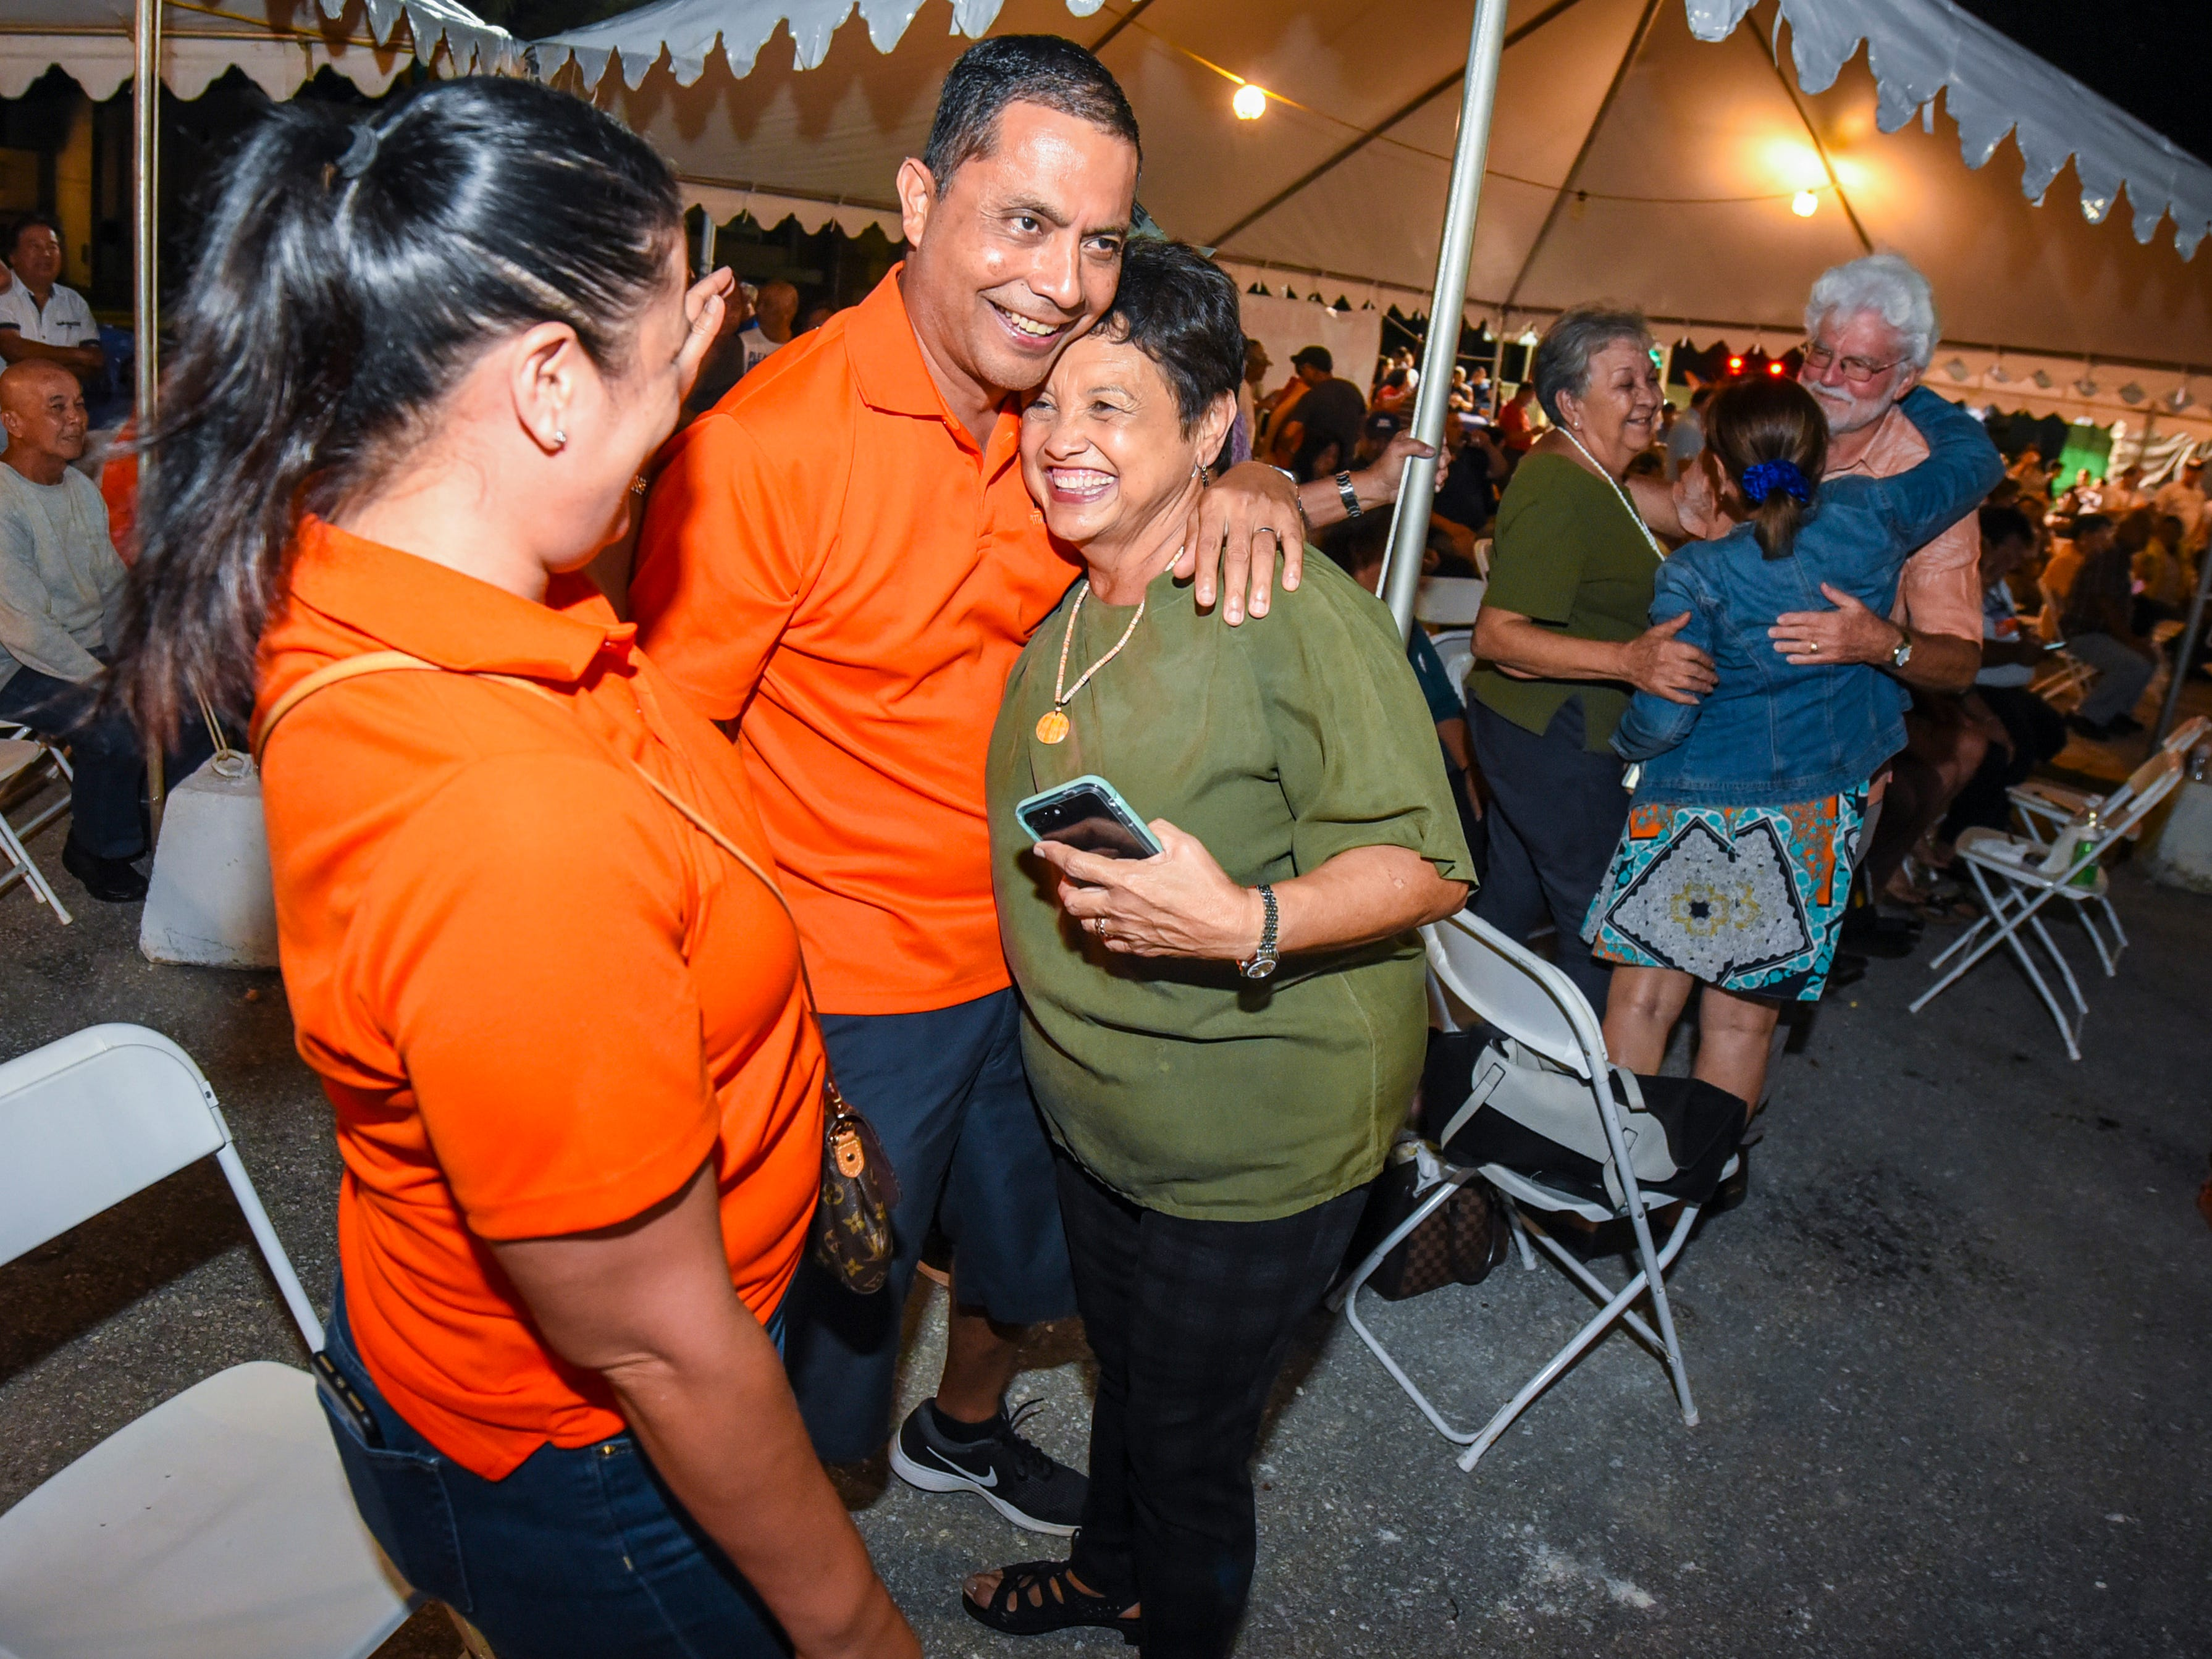 Democratic gubernatorial candidate, Lou Leon Guerrero, wearing green, celebrates with supporters after favorable early returns at the team's campaign headquarters in Hagåtña during the late evening hours of Tuesday, Nov. 6, 2018.